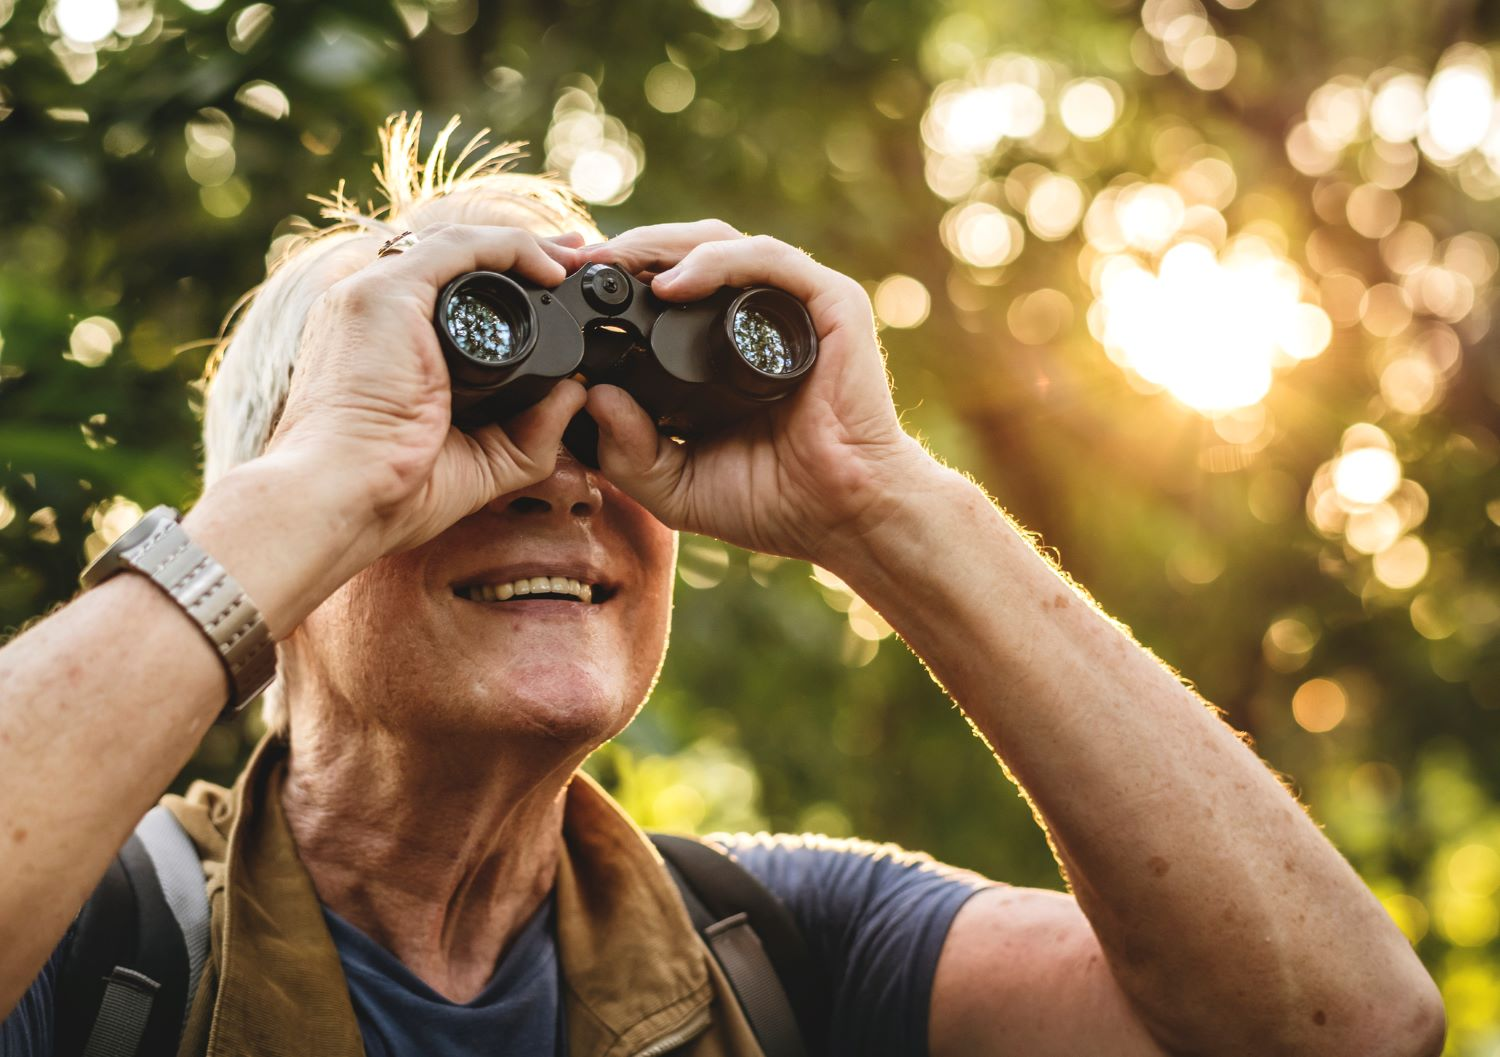 The Great Bird Watcher War Taking Place in New York's Central Park